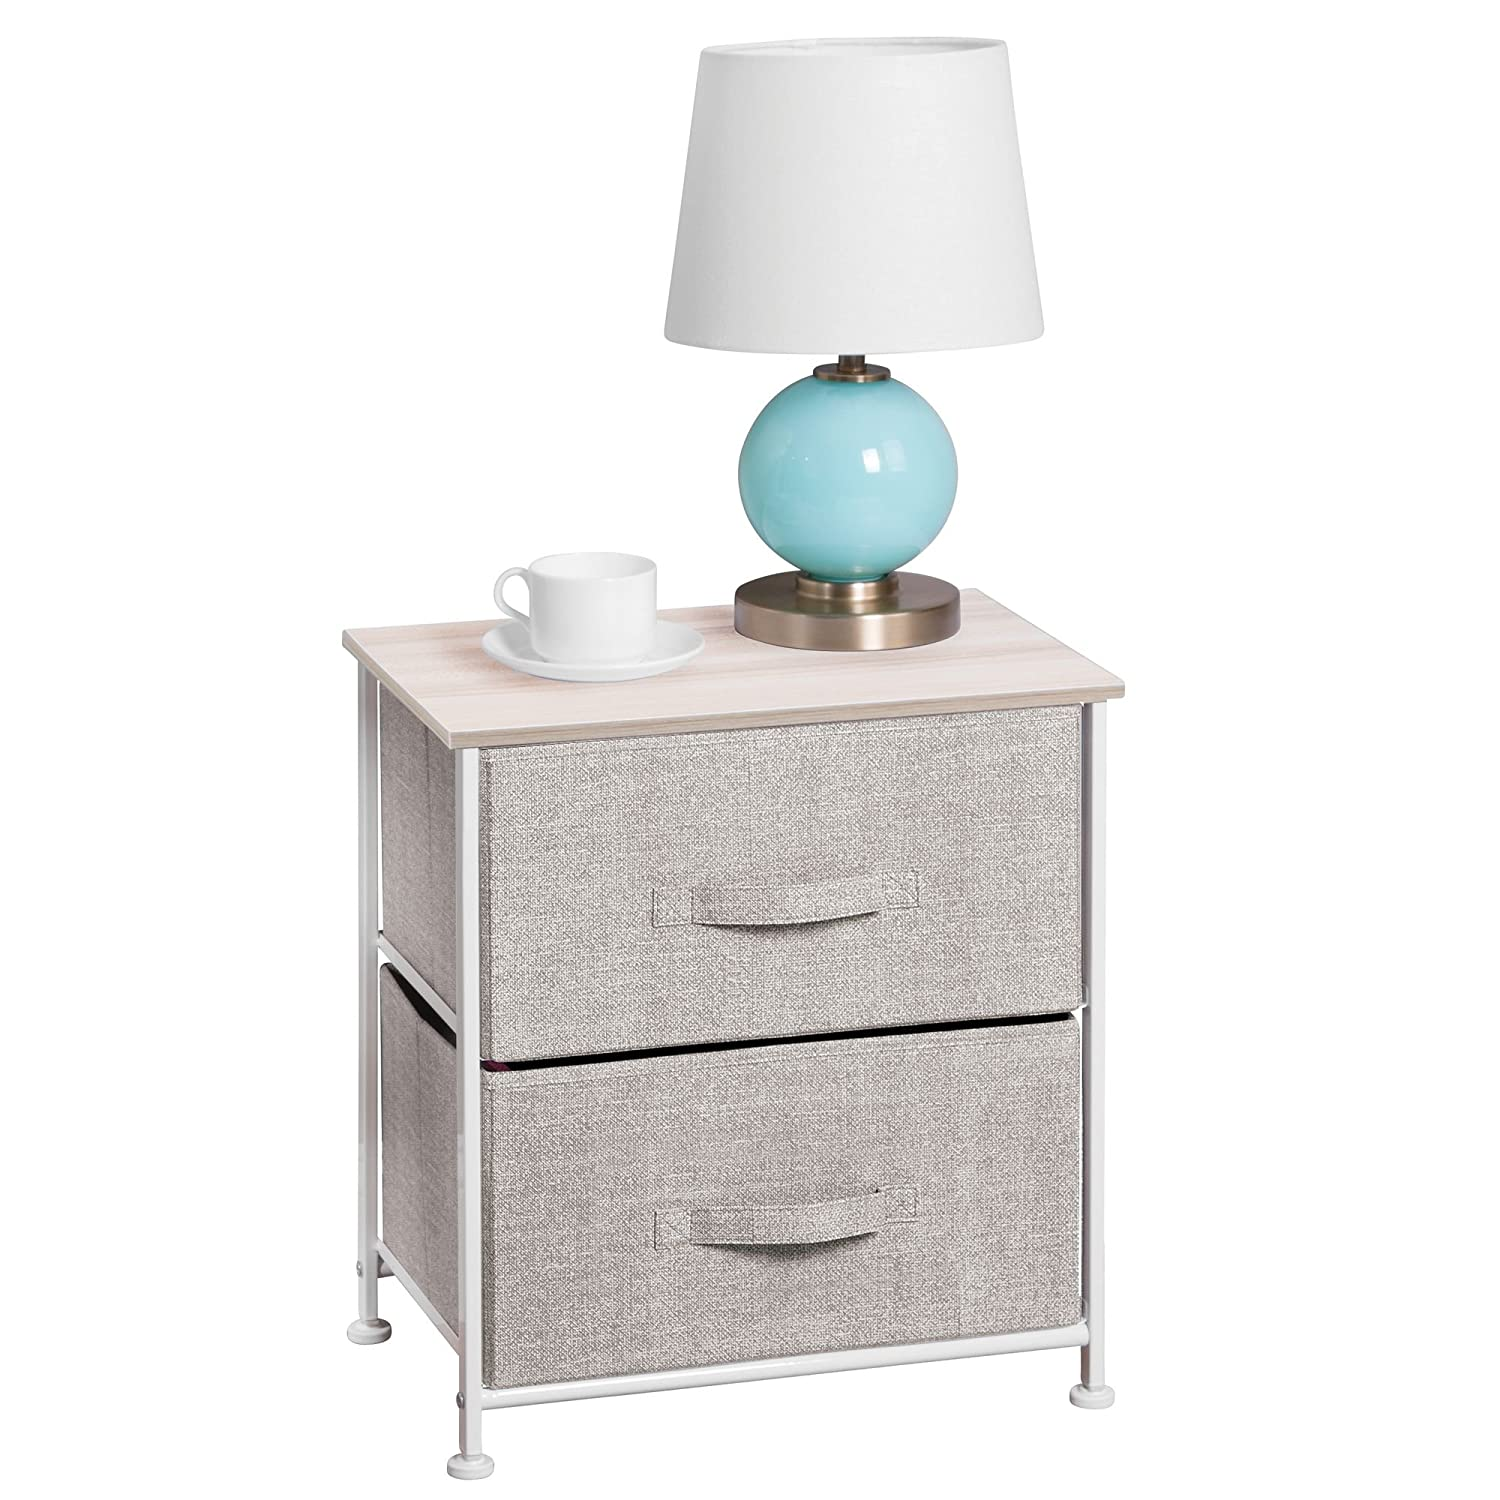 mDesign Short Dresser Storage Tower - Sturdy Steel Frame, Wood Top, Easy Pull Fabric Bins - Organizer Unit for Bedroom, Hallway, Entryway, Closets - Chevron Print - 2 Drawers, Gray/White MetroDecor 6564MDHS